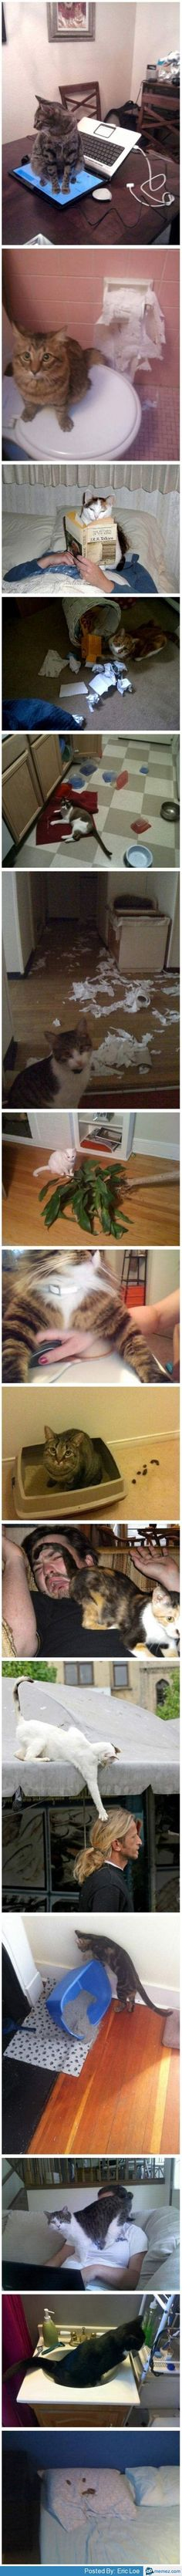 Scumbag cats. As my husband would say this is why we are NEVER getting a cat!